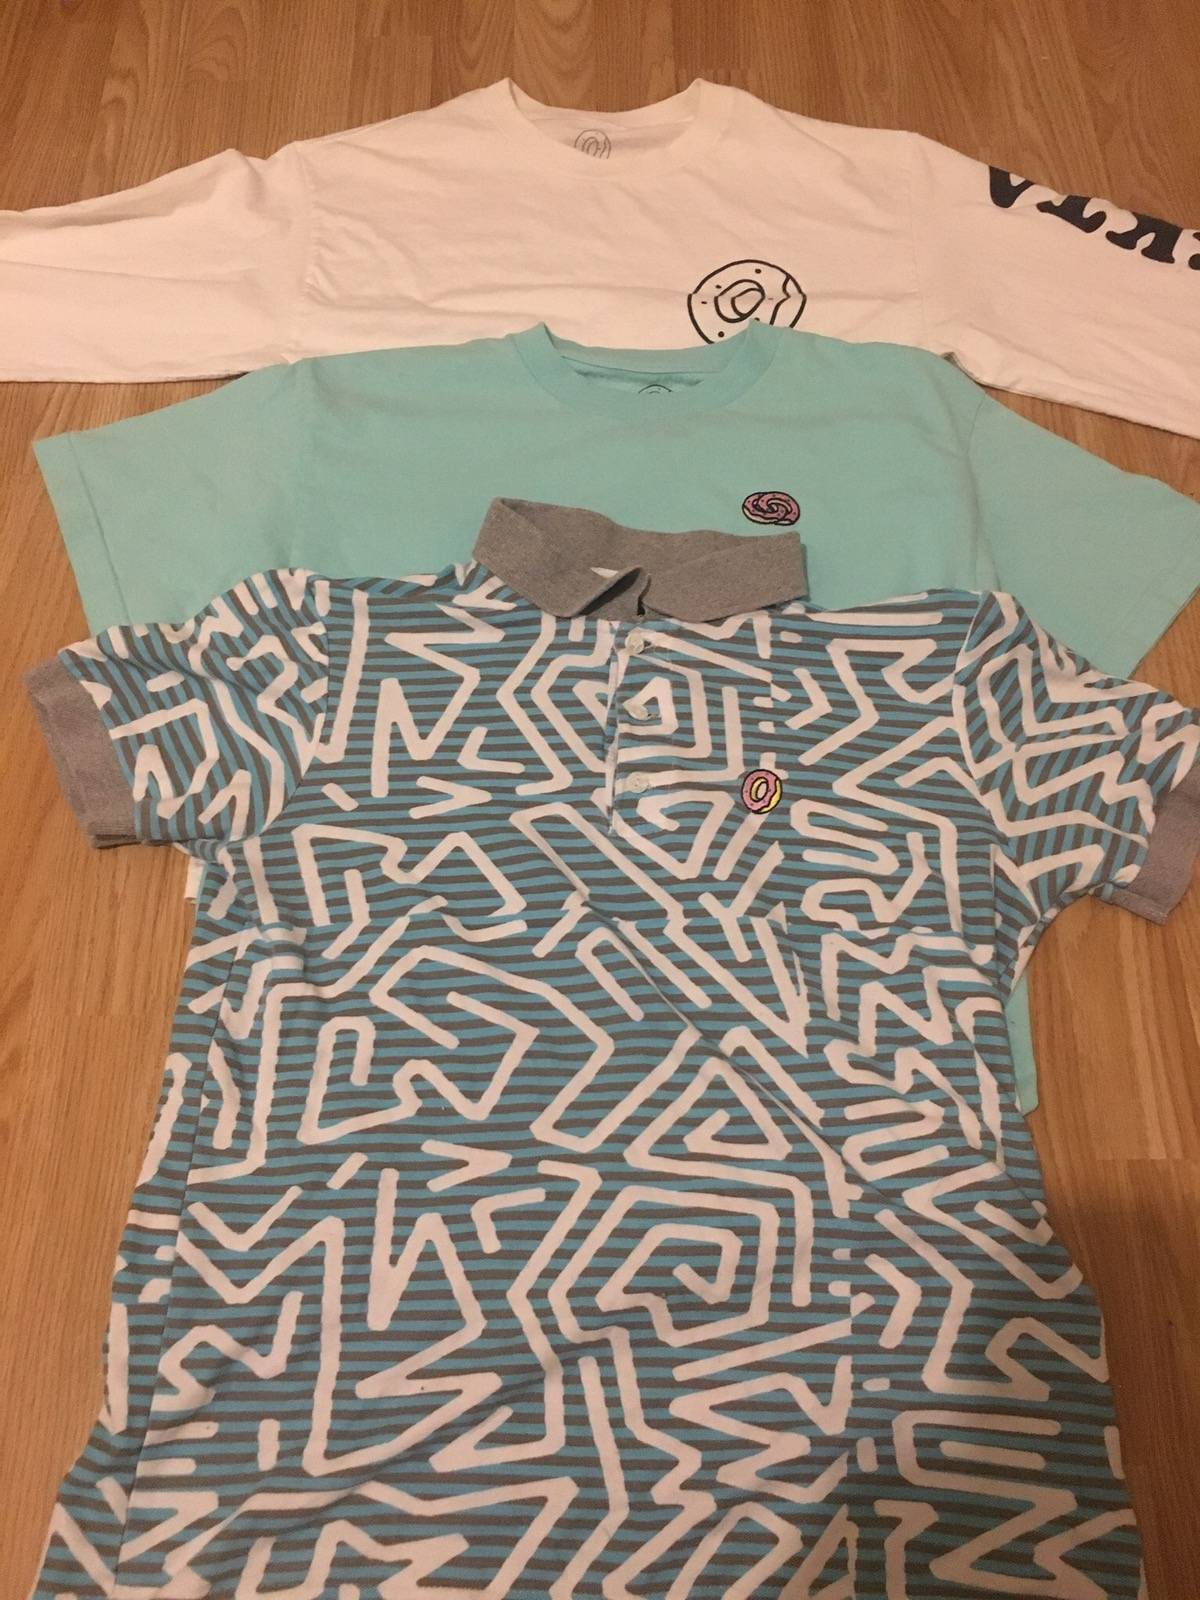 0dd09d1273adae Odd Future Golf Wang Odd Future Rare T Shirt Bundle